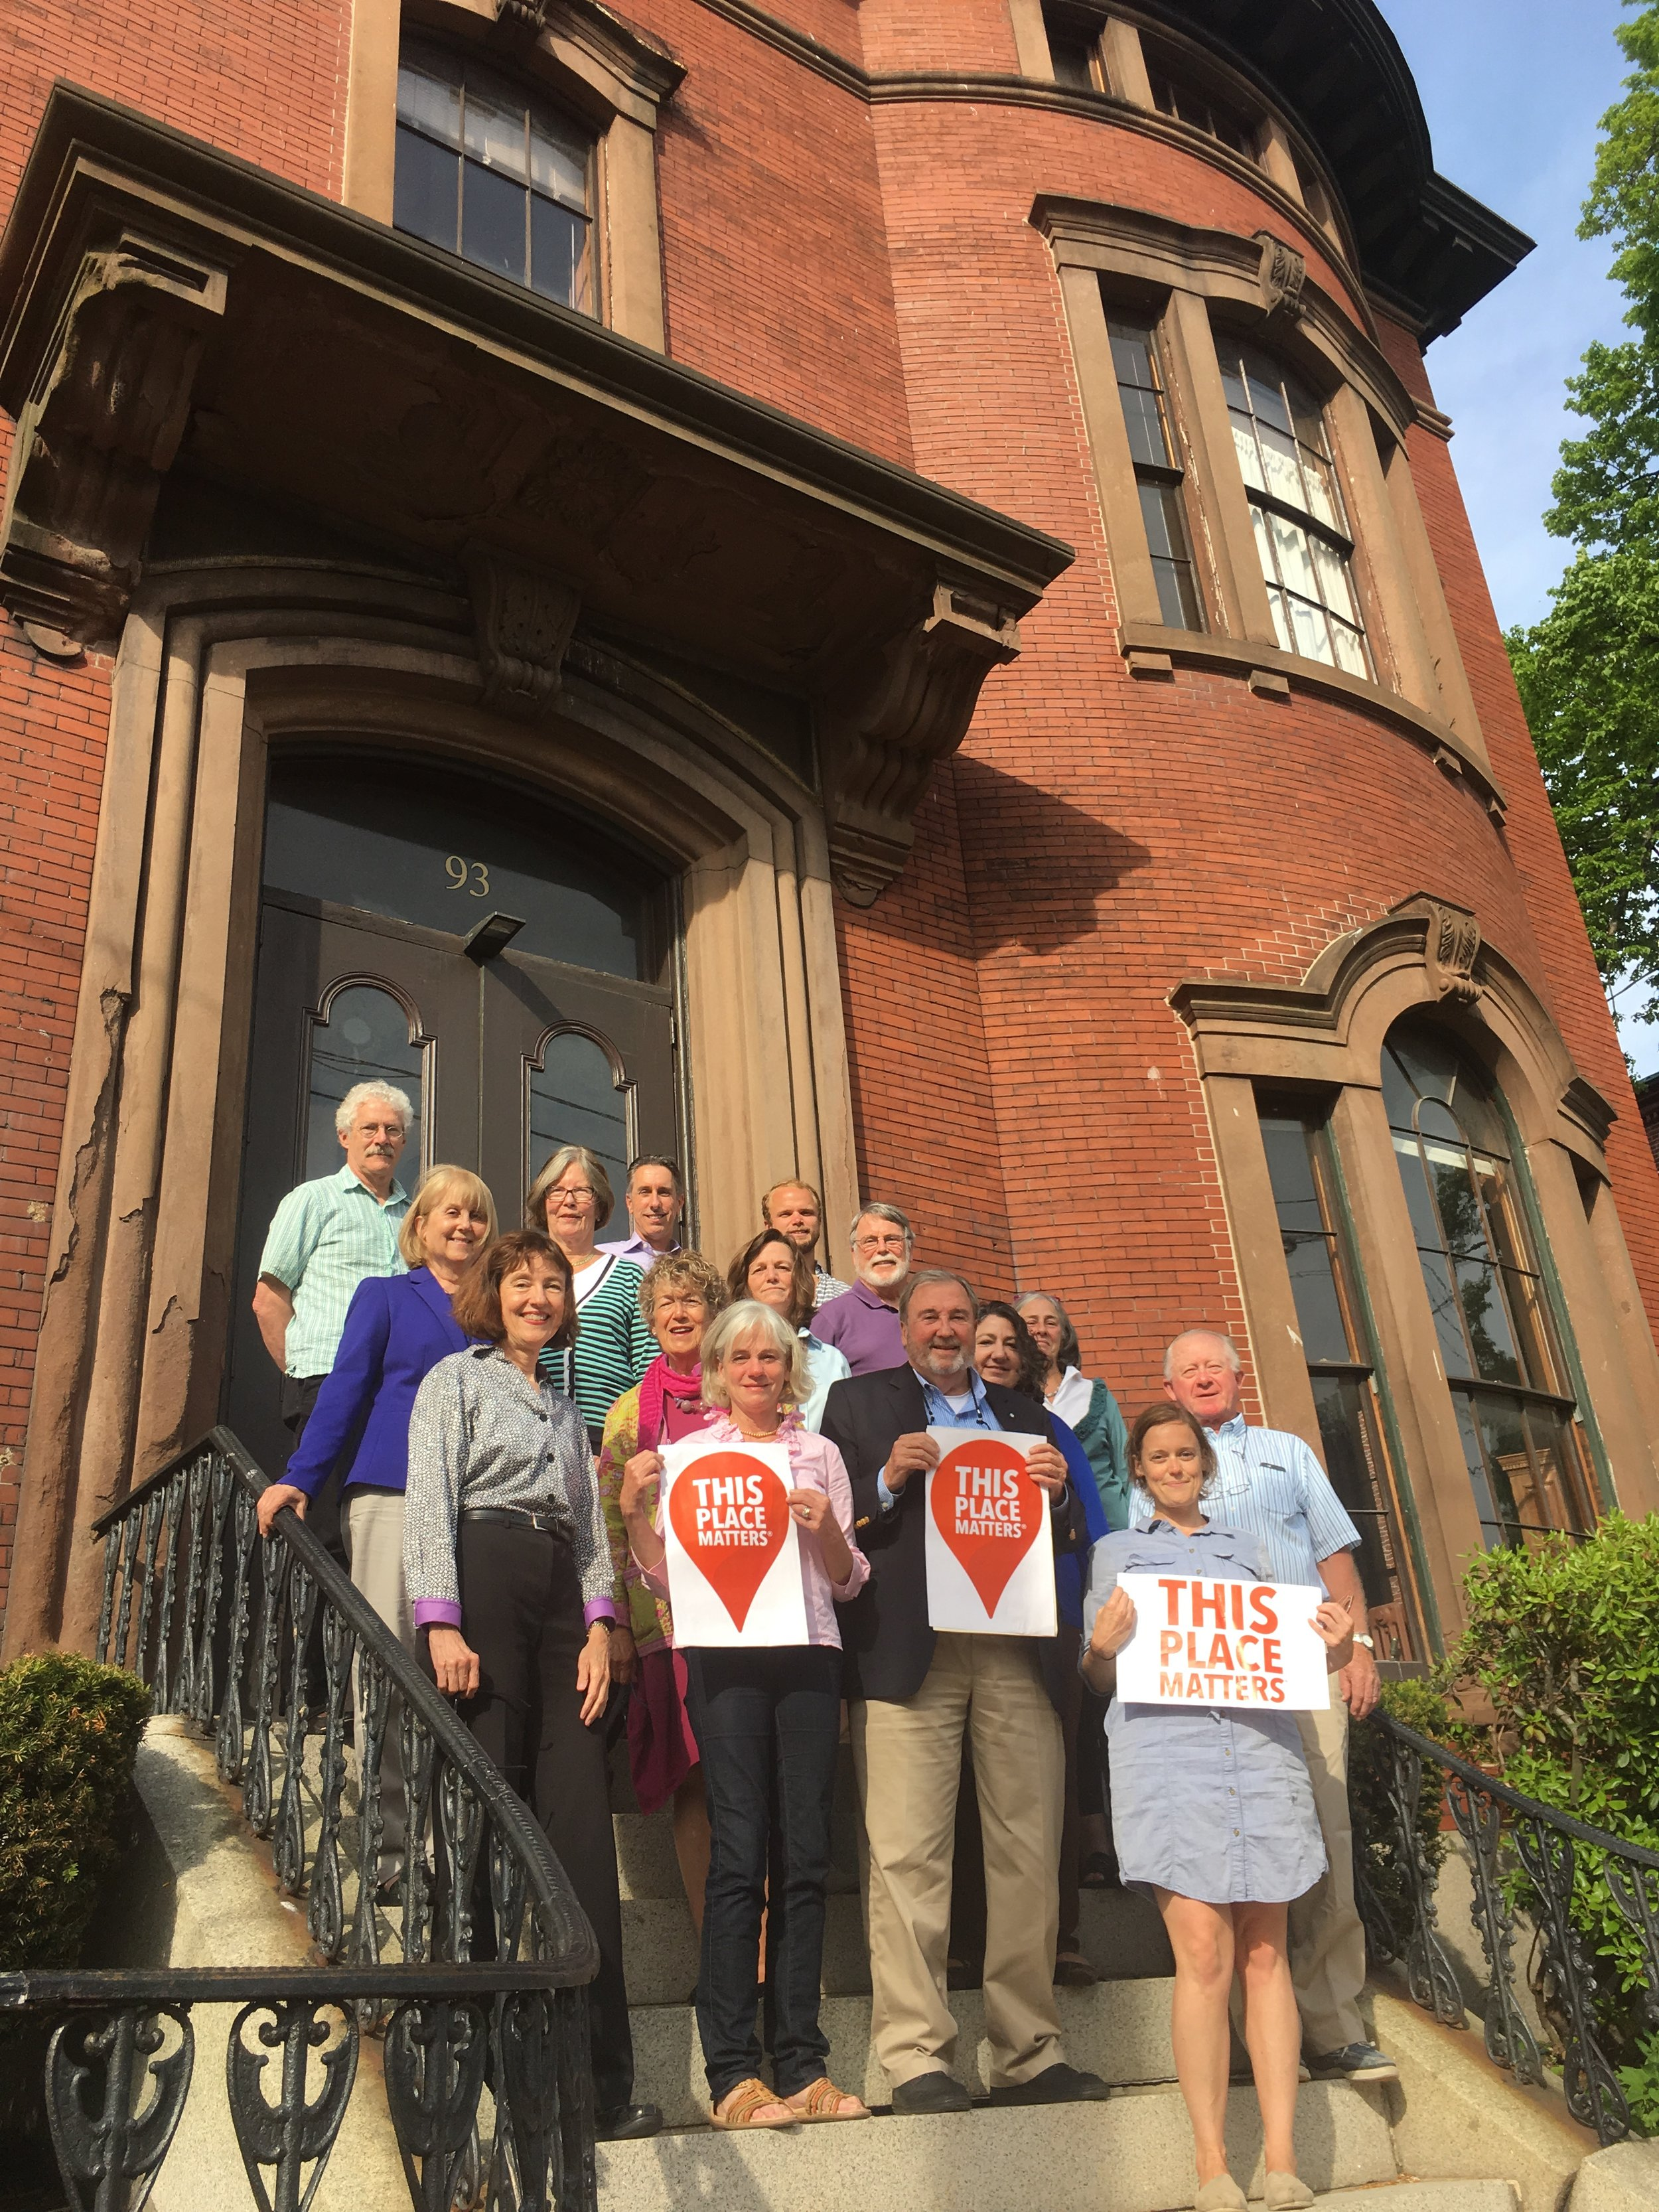 Thisplacematters_Board_SaffordHouse_May2016.jpg